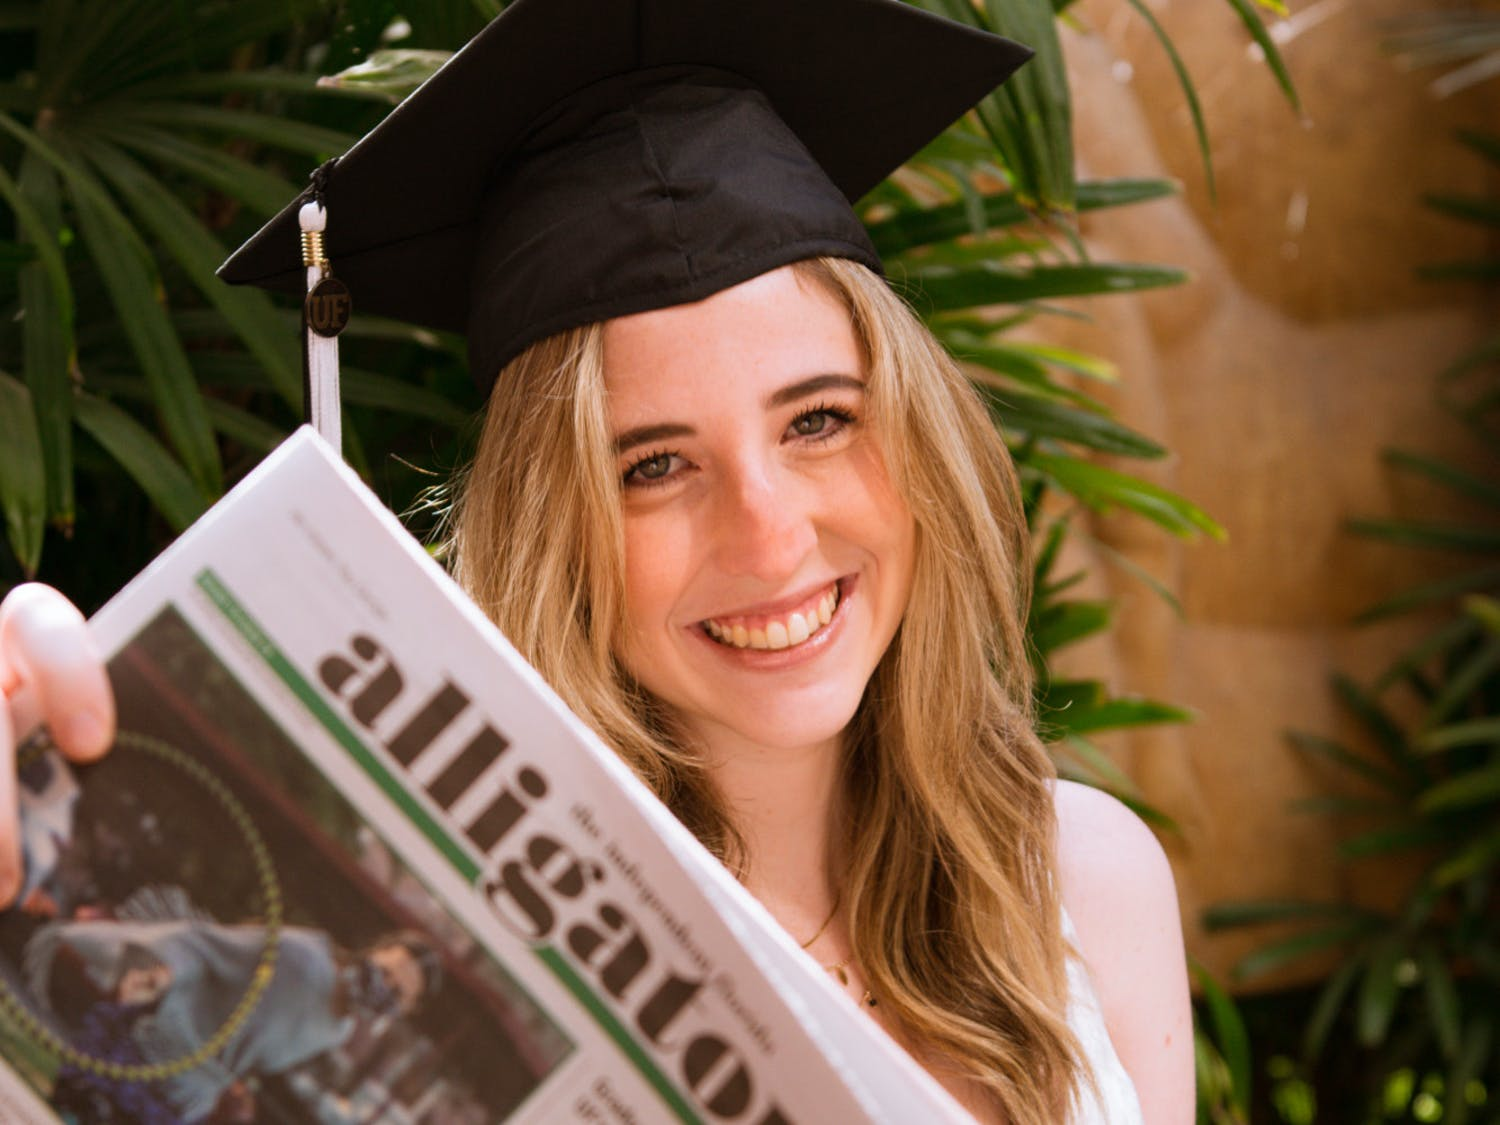 Karina Elwood was Editor-in-Chief at The Alligator